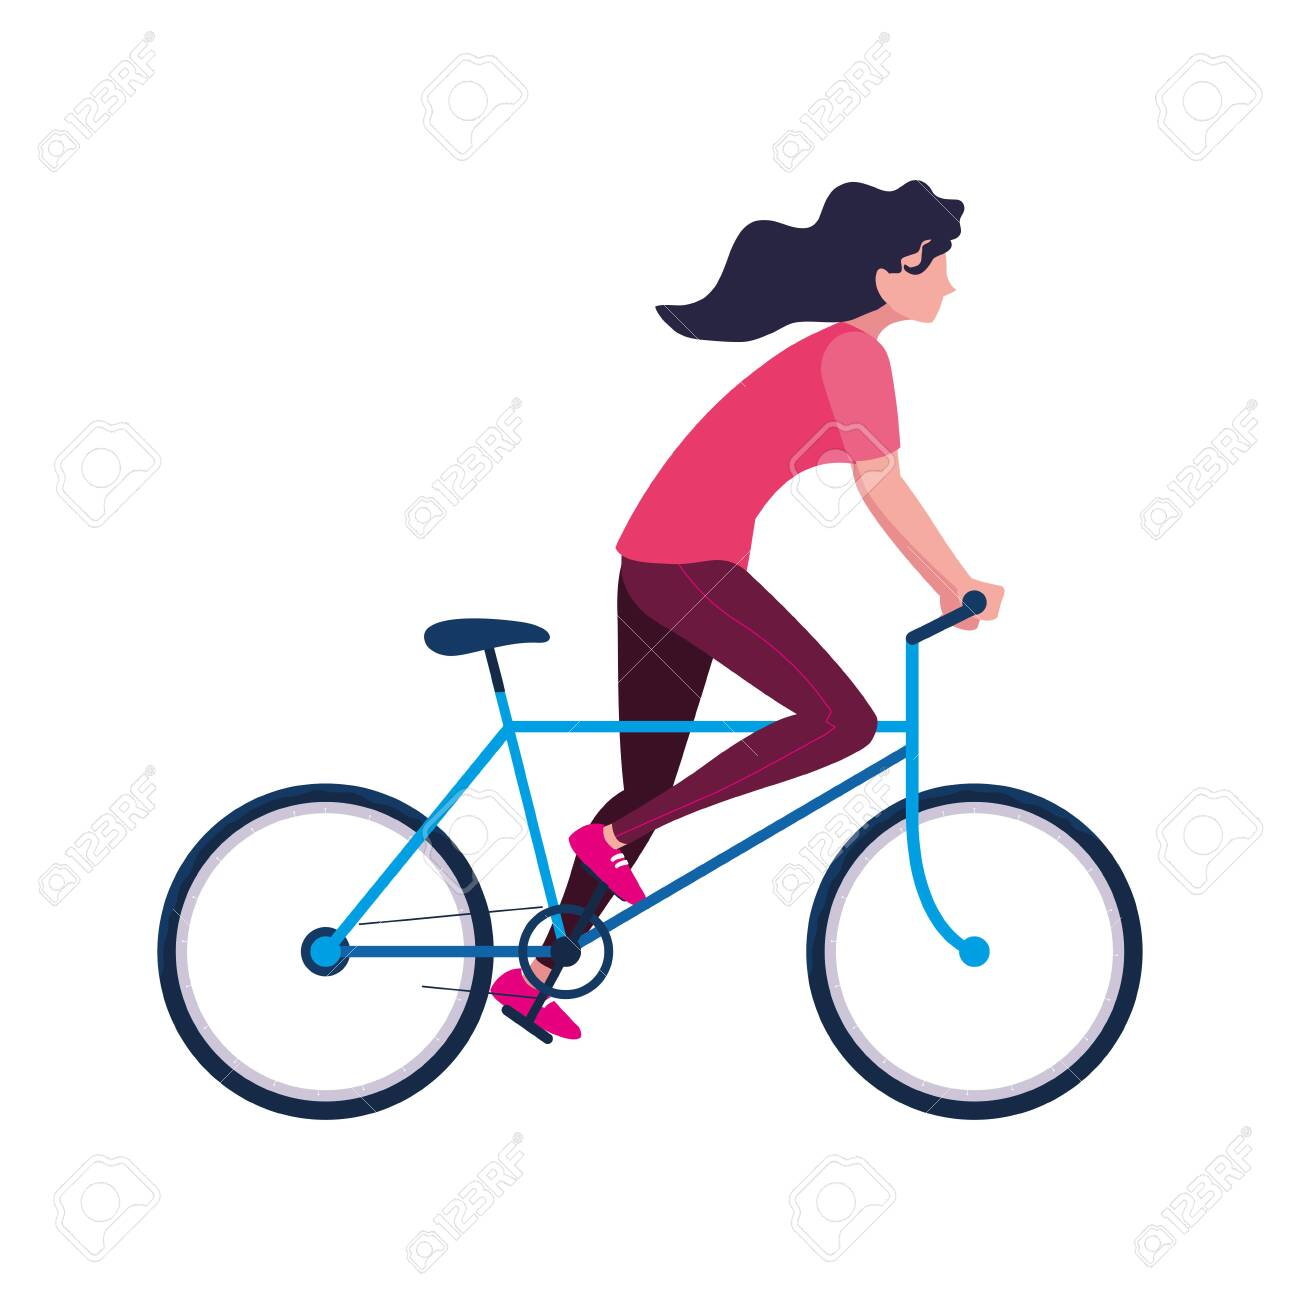 woman riding bicycle activity image on white background vector illustration - 136954760